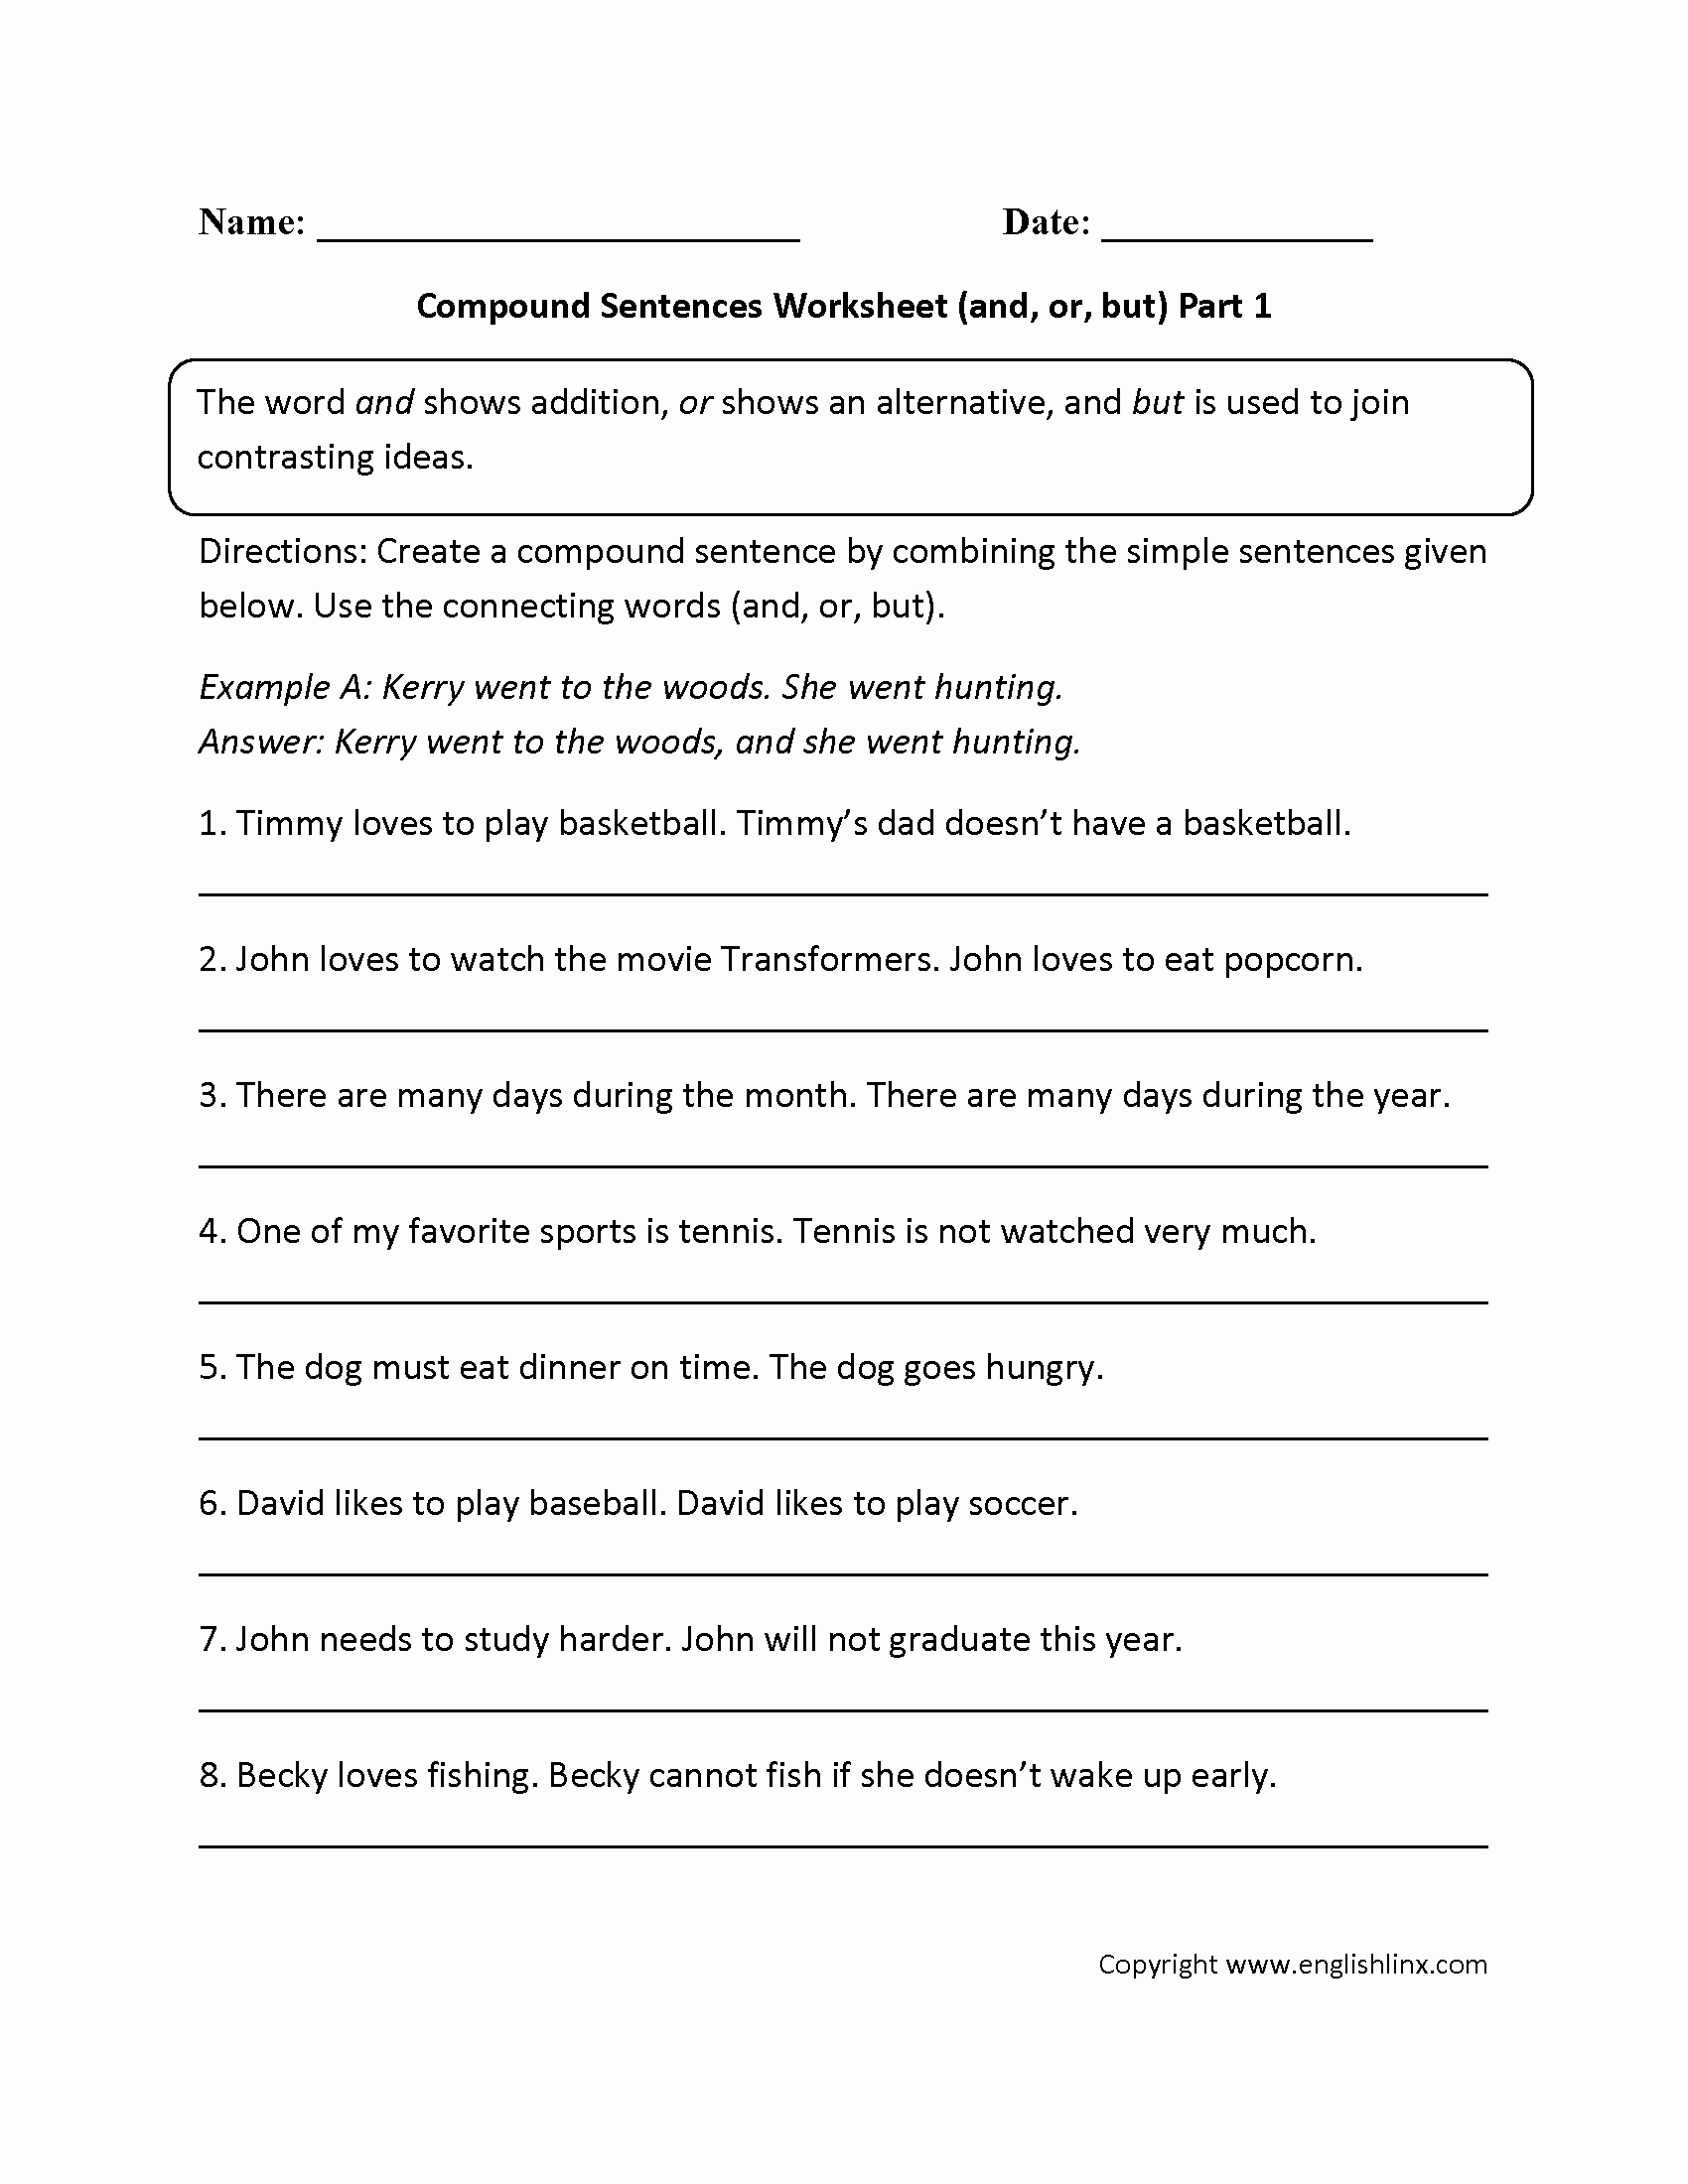 Complex Sentence Worksheets 4th Grade Fresh Bining Sentences 4th Grade Worksheets — Excelguider